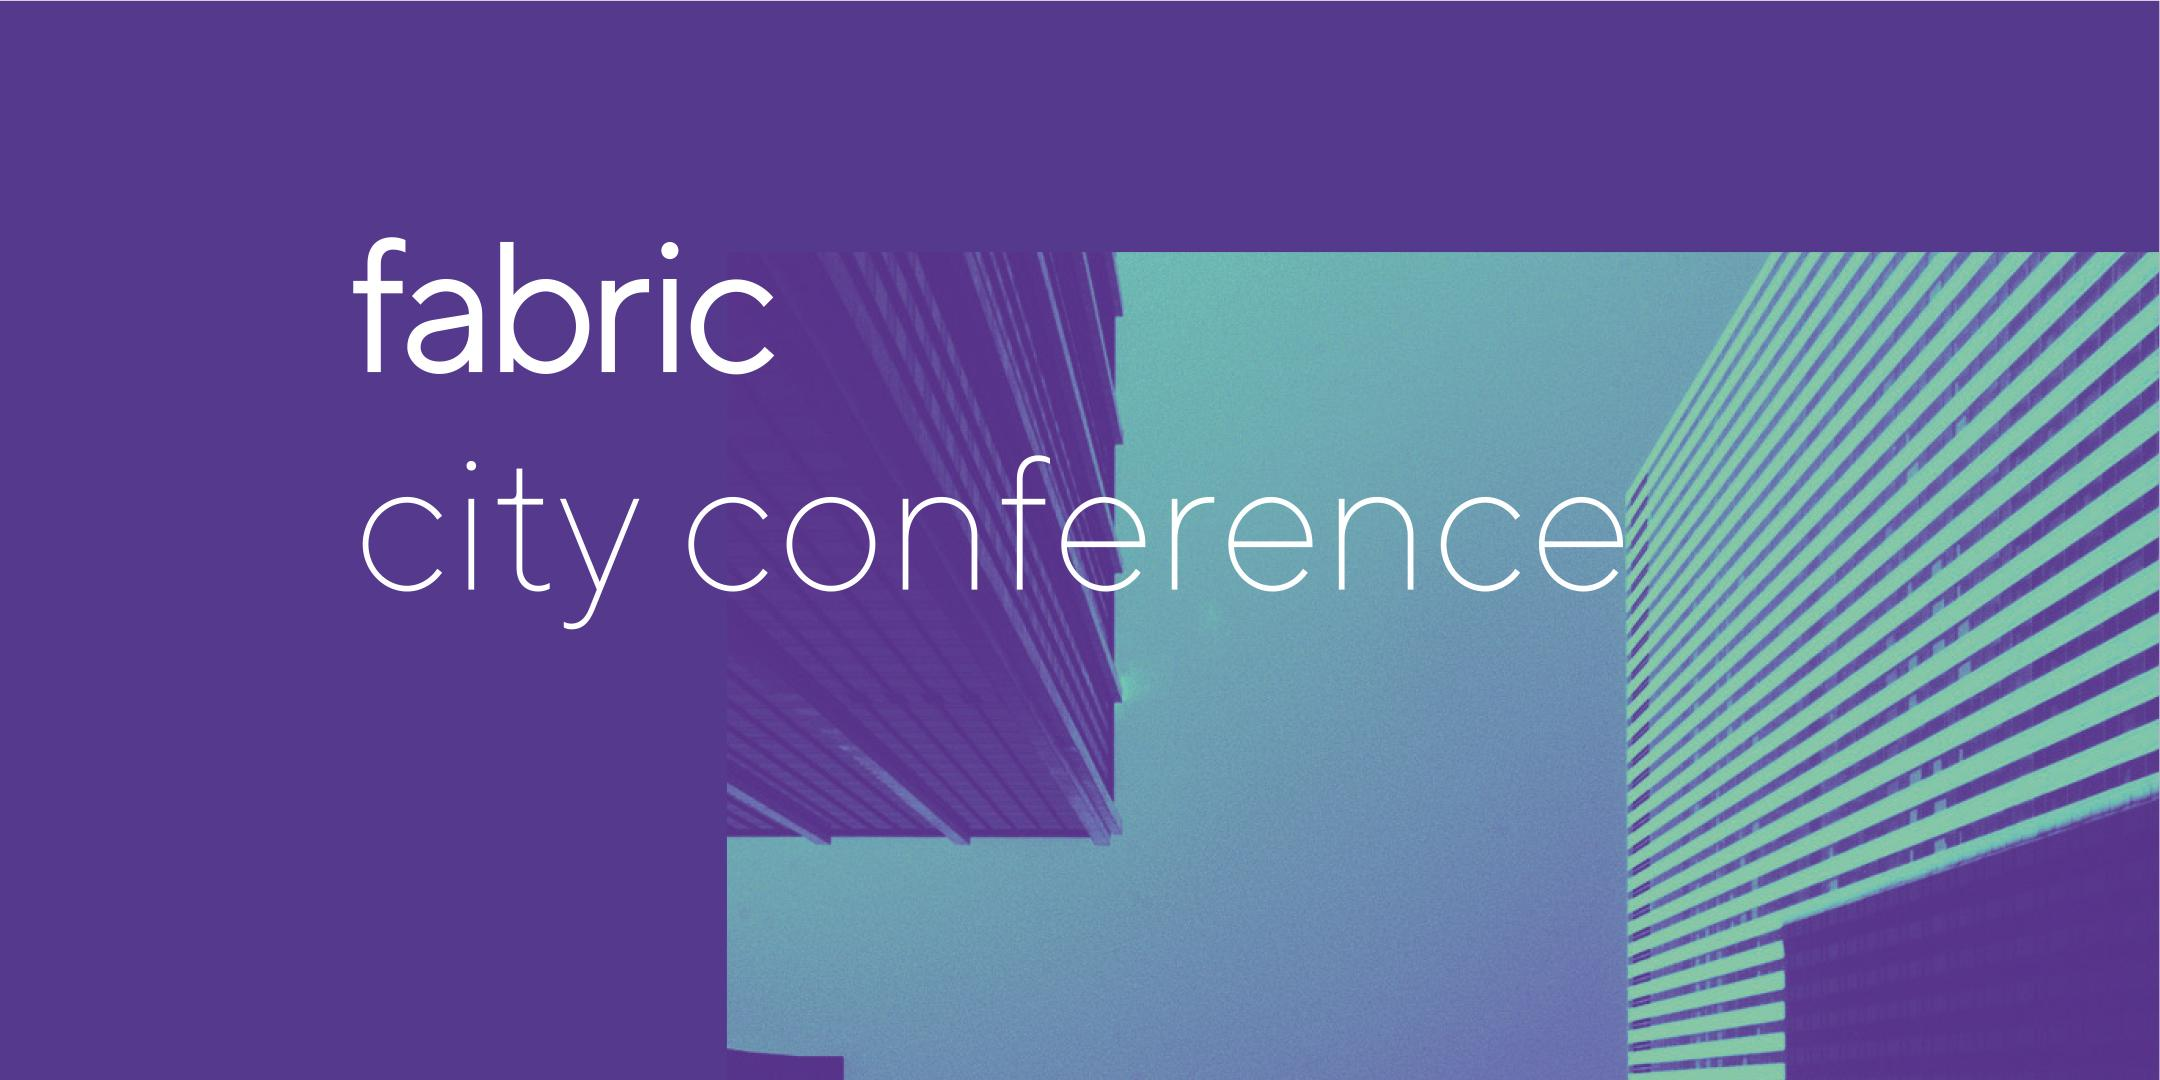 Fabric City Conference 2018